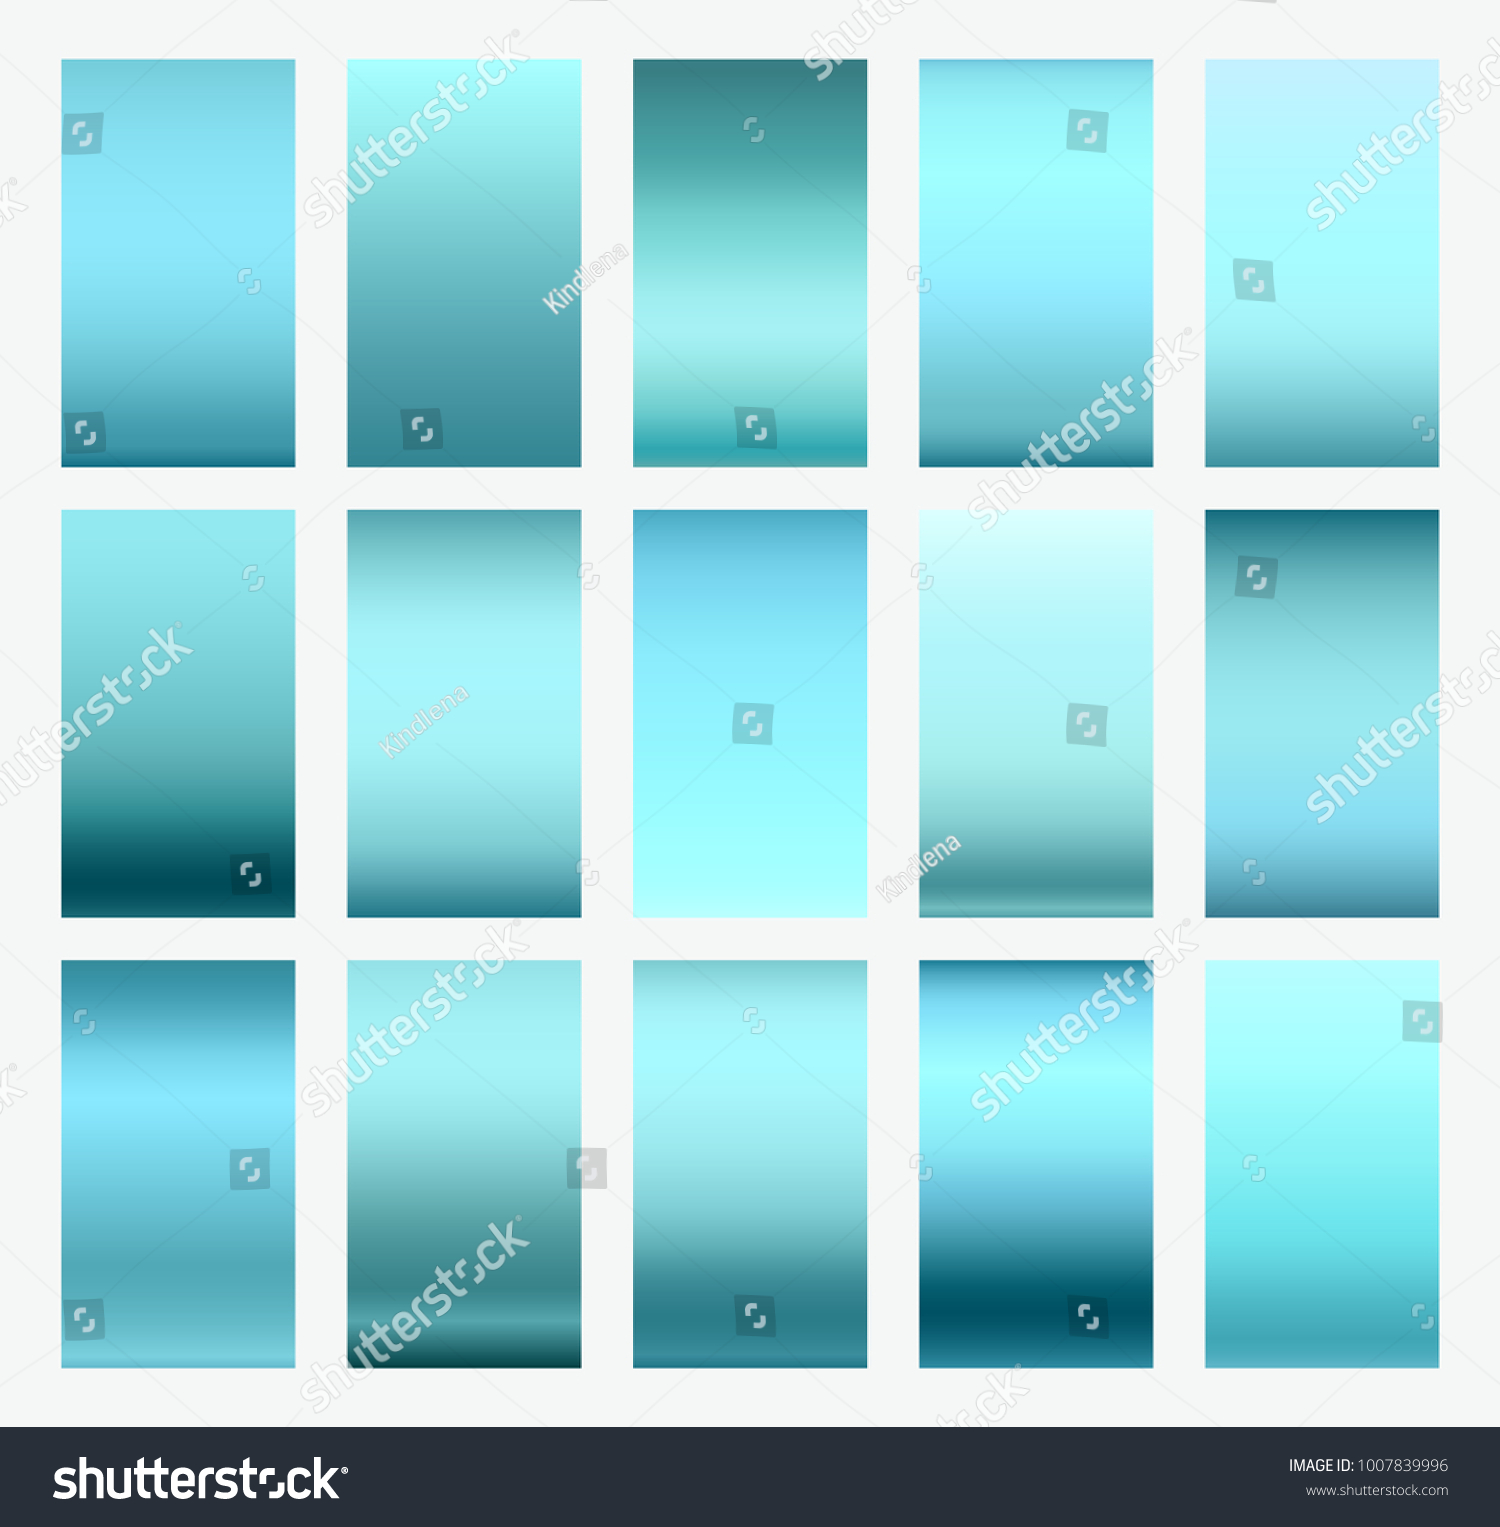 Gradient Blue Background Set Vector Modern Bright Turquoise Elegant Soft Color And Screen Interface